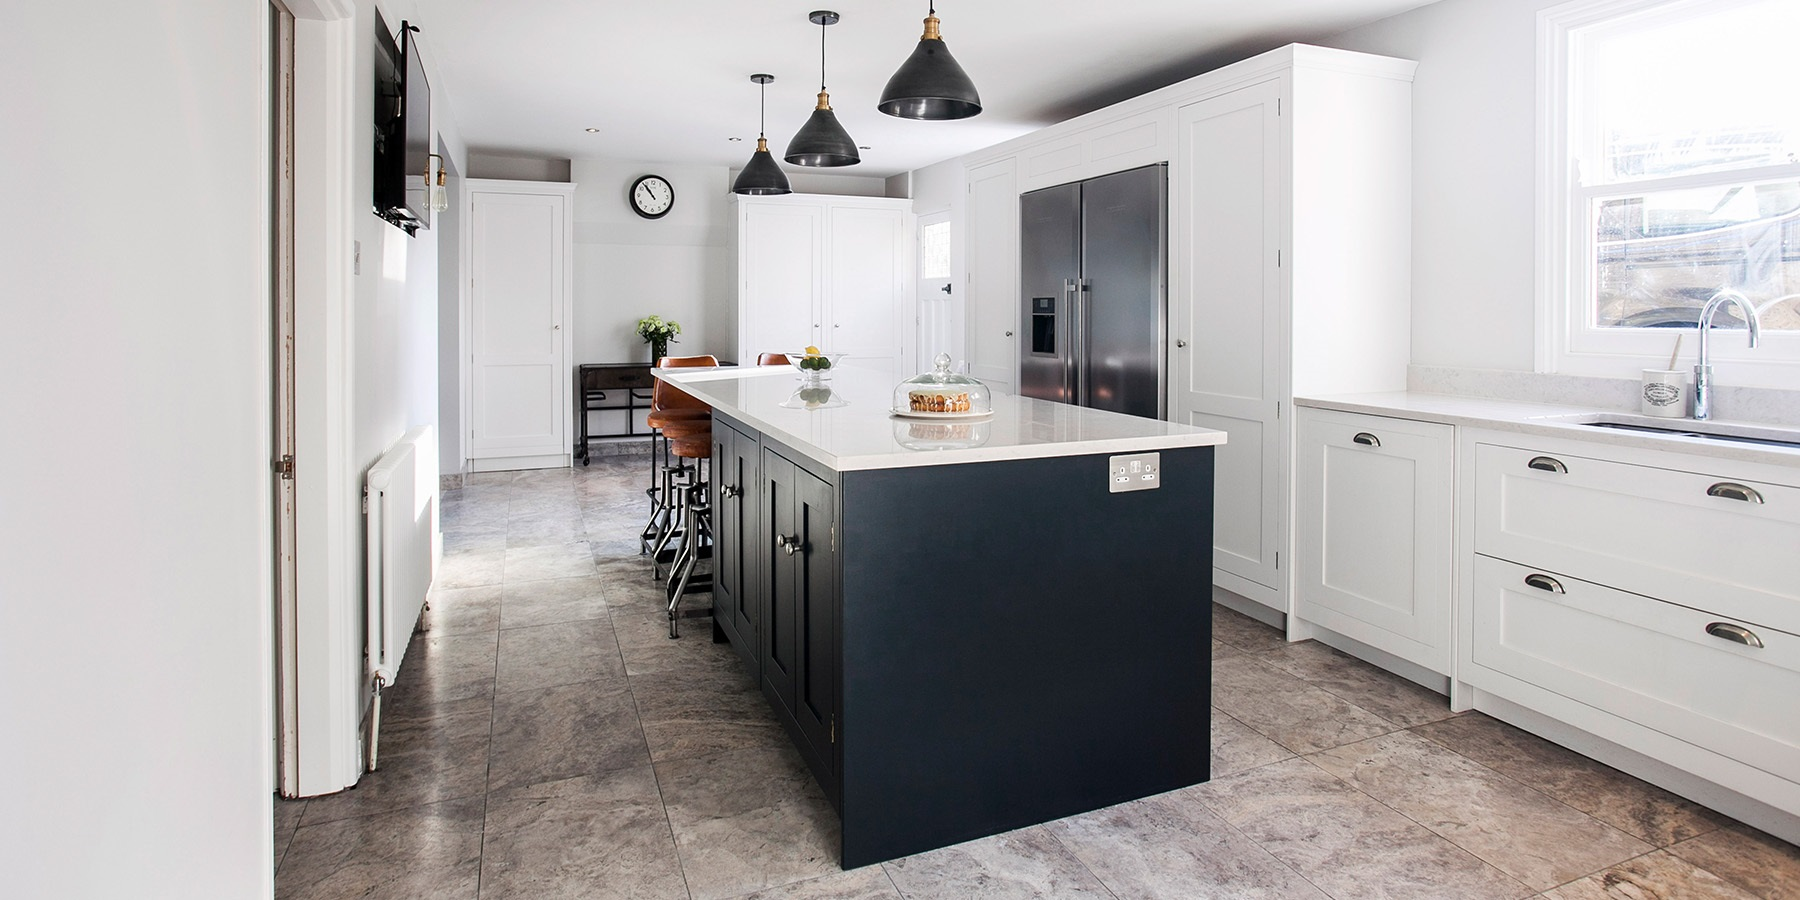 handmade Family Kitchen - Burlanes classic Hoyden kitchen in white and navy, with white worktops and large stainless steel fridge.